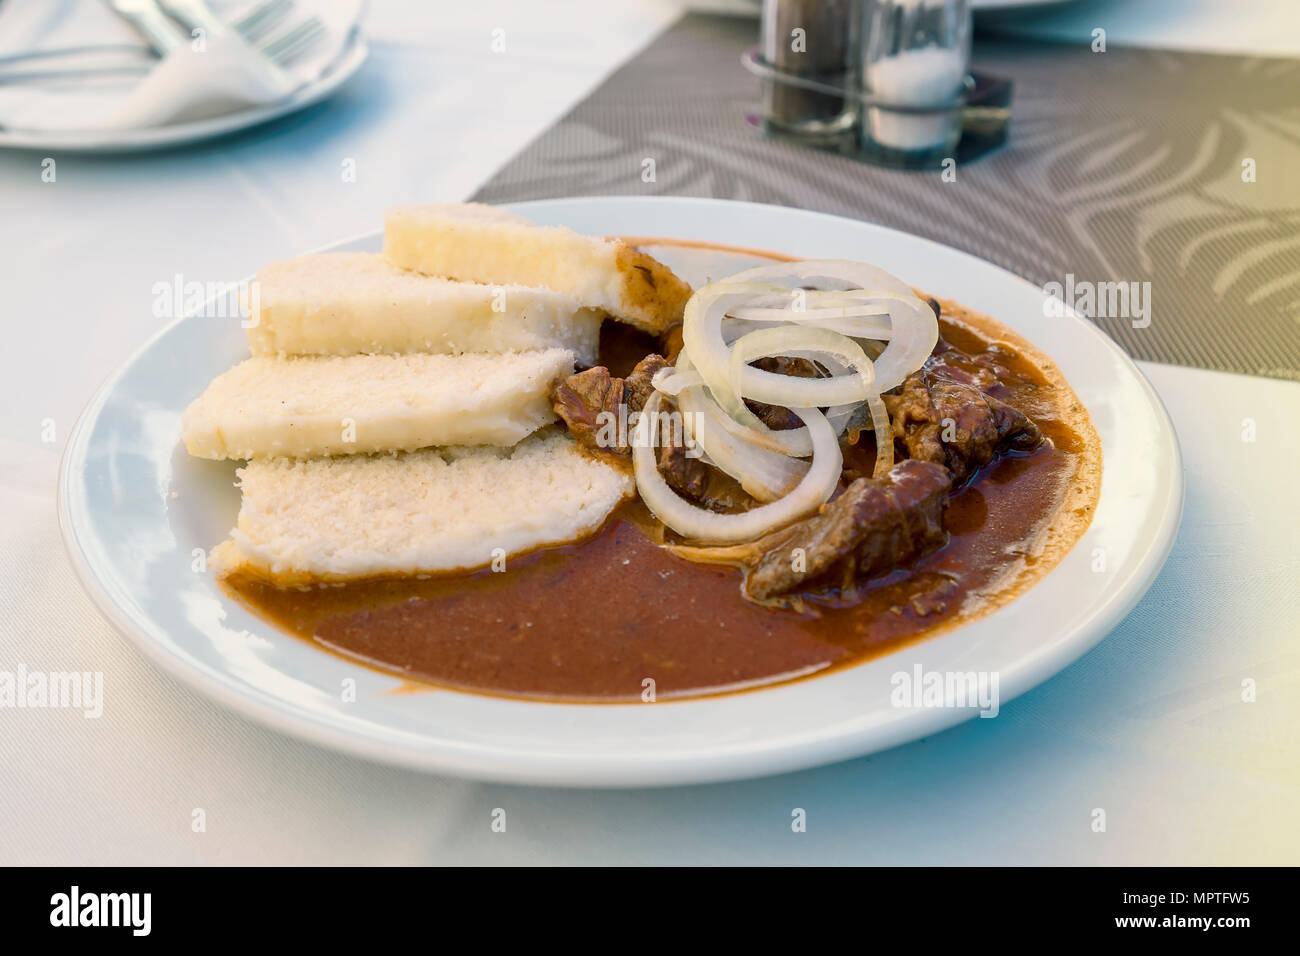 Czech beef goulash with knodel on a white plate. Goulash with bread dumplings. - Stock Image